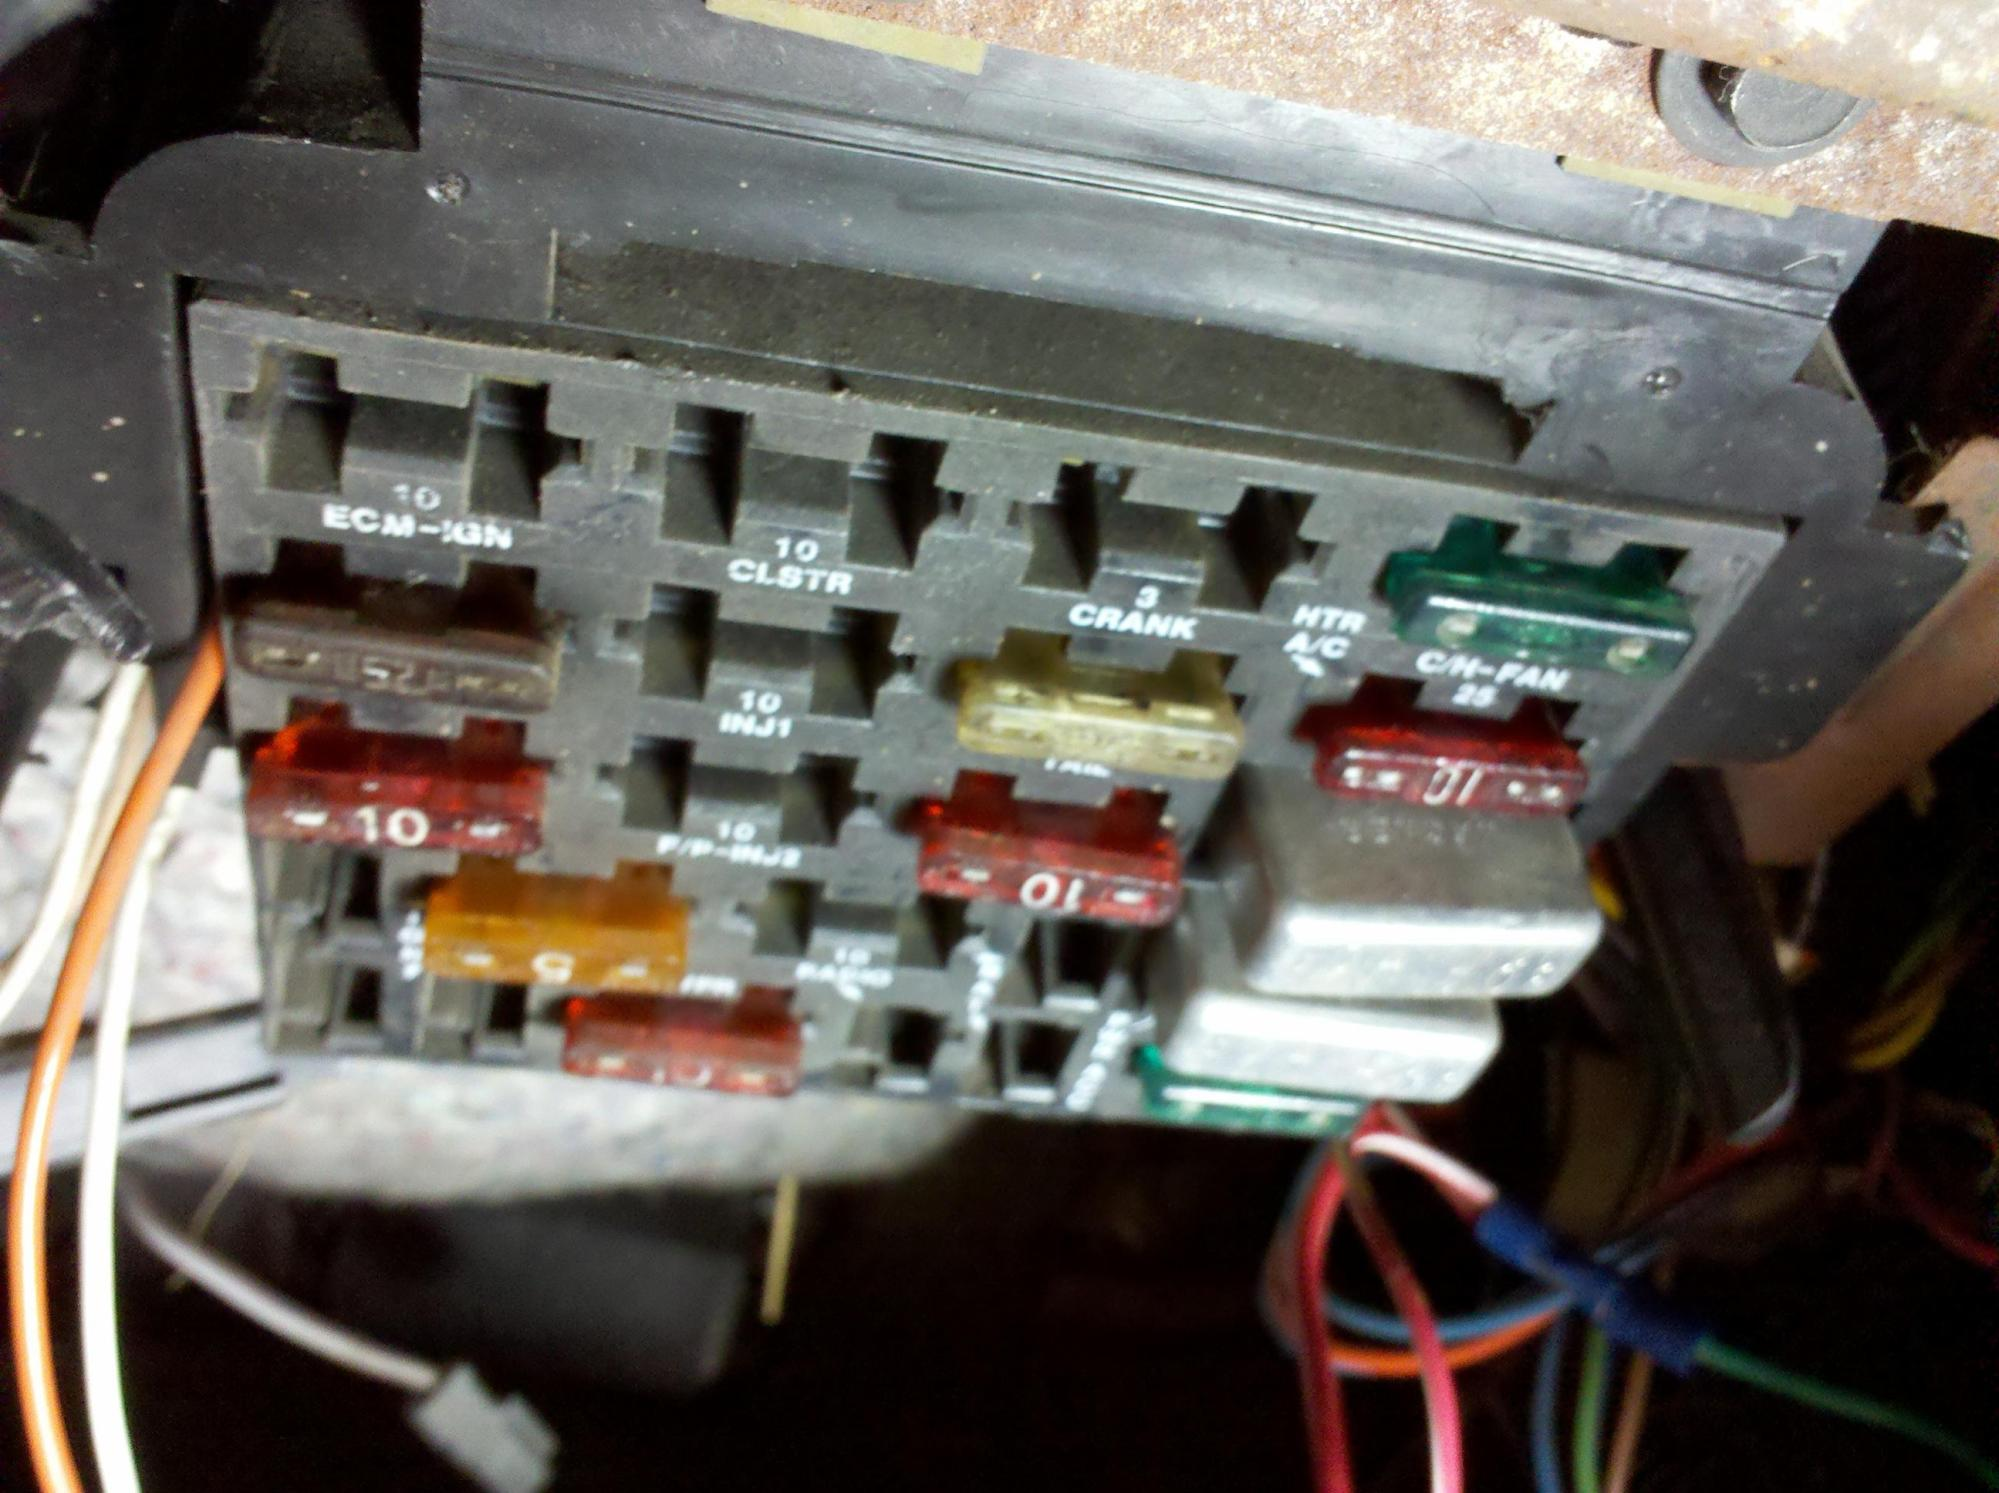 hight resolution of trans am fuse box wiring diagram experts81 camaro fuse box wiring diagram 2000 trans am fuse